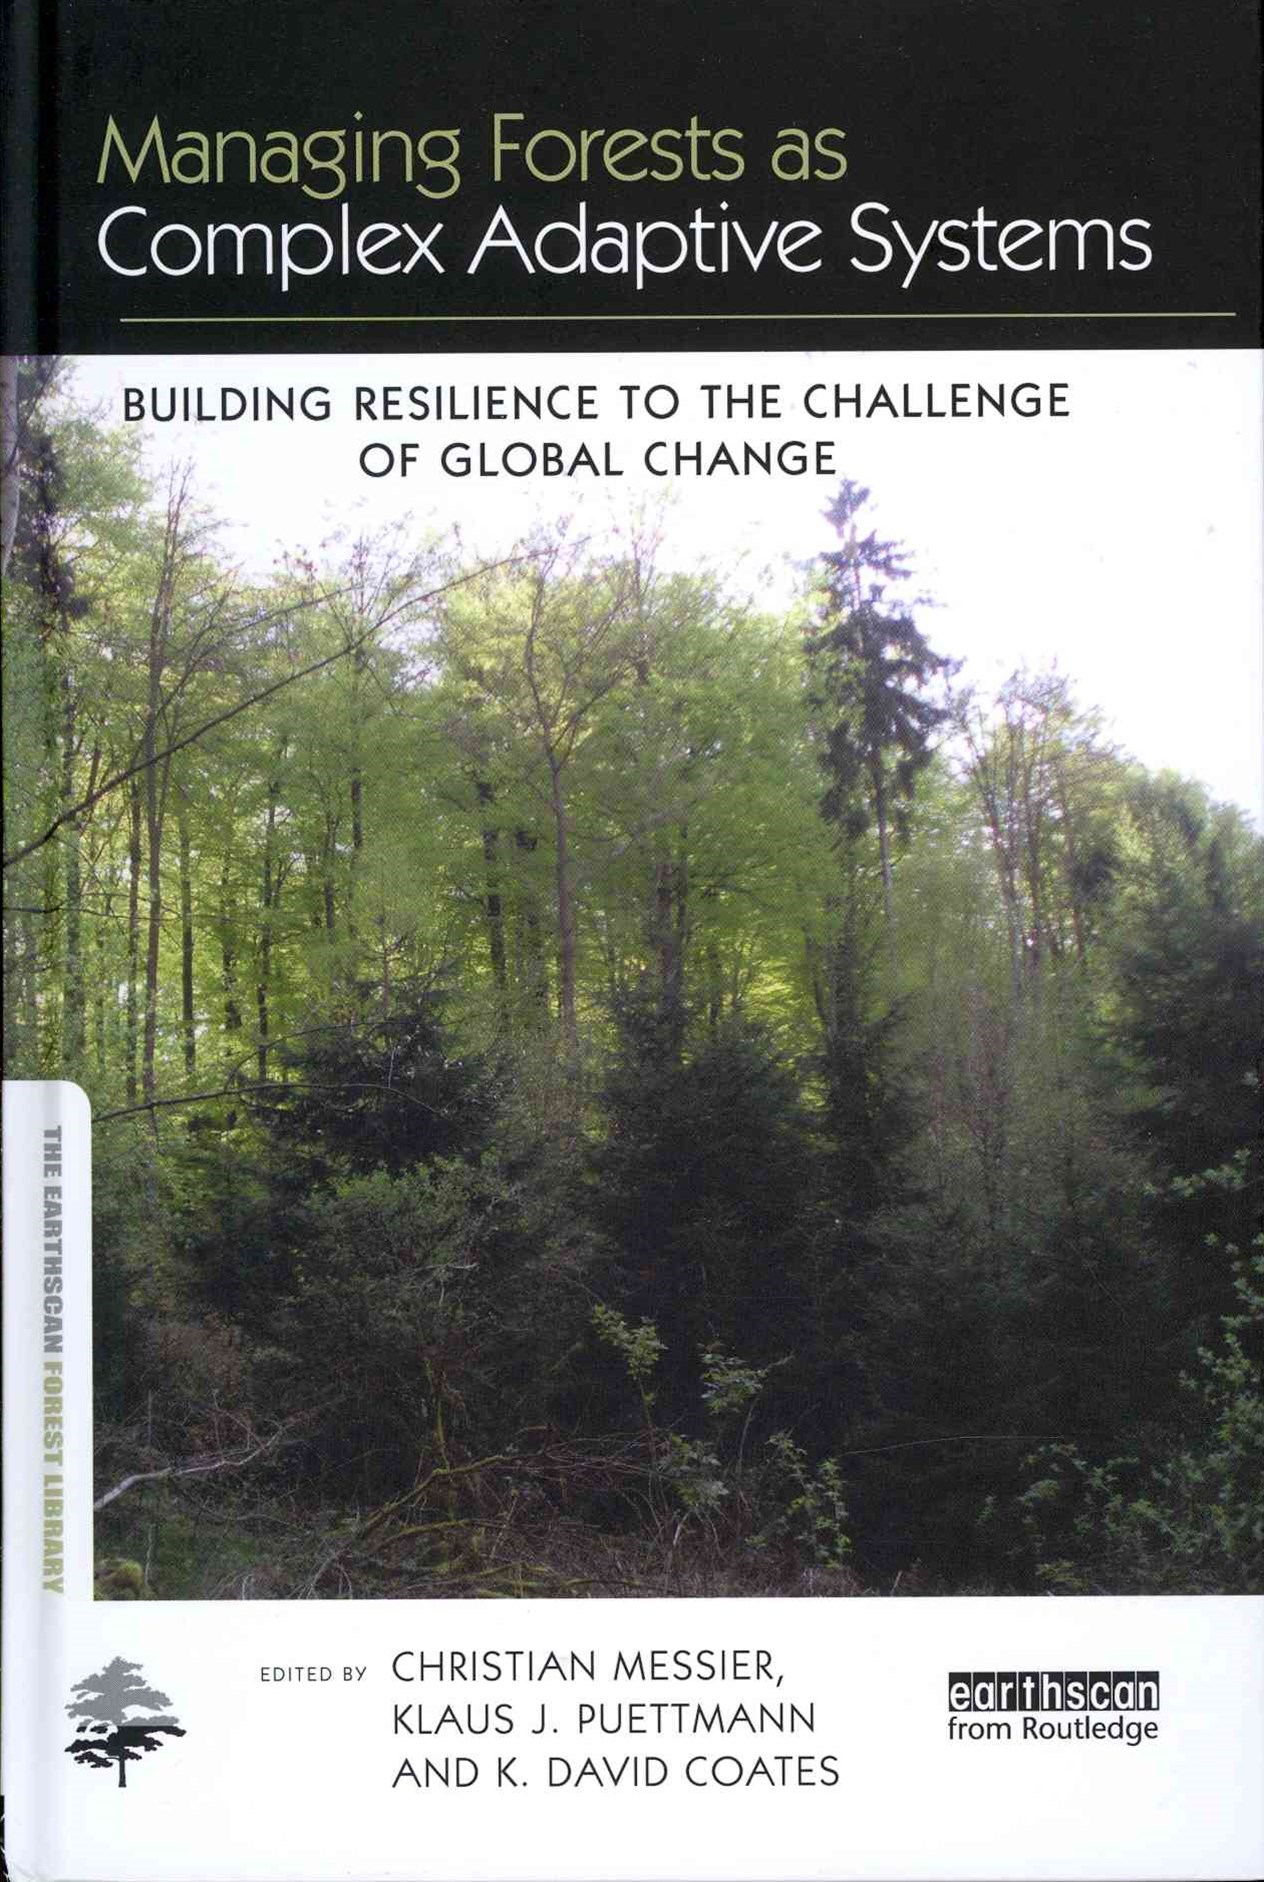 Managing Forests as Complex Adaptive Systems